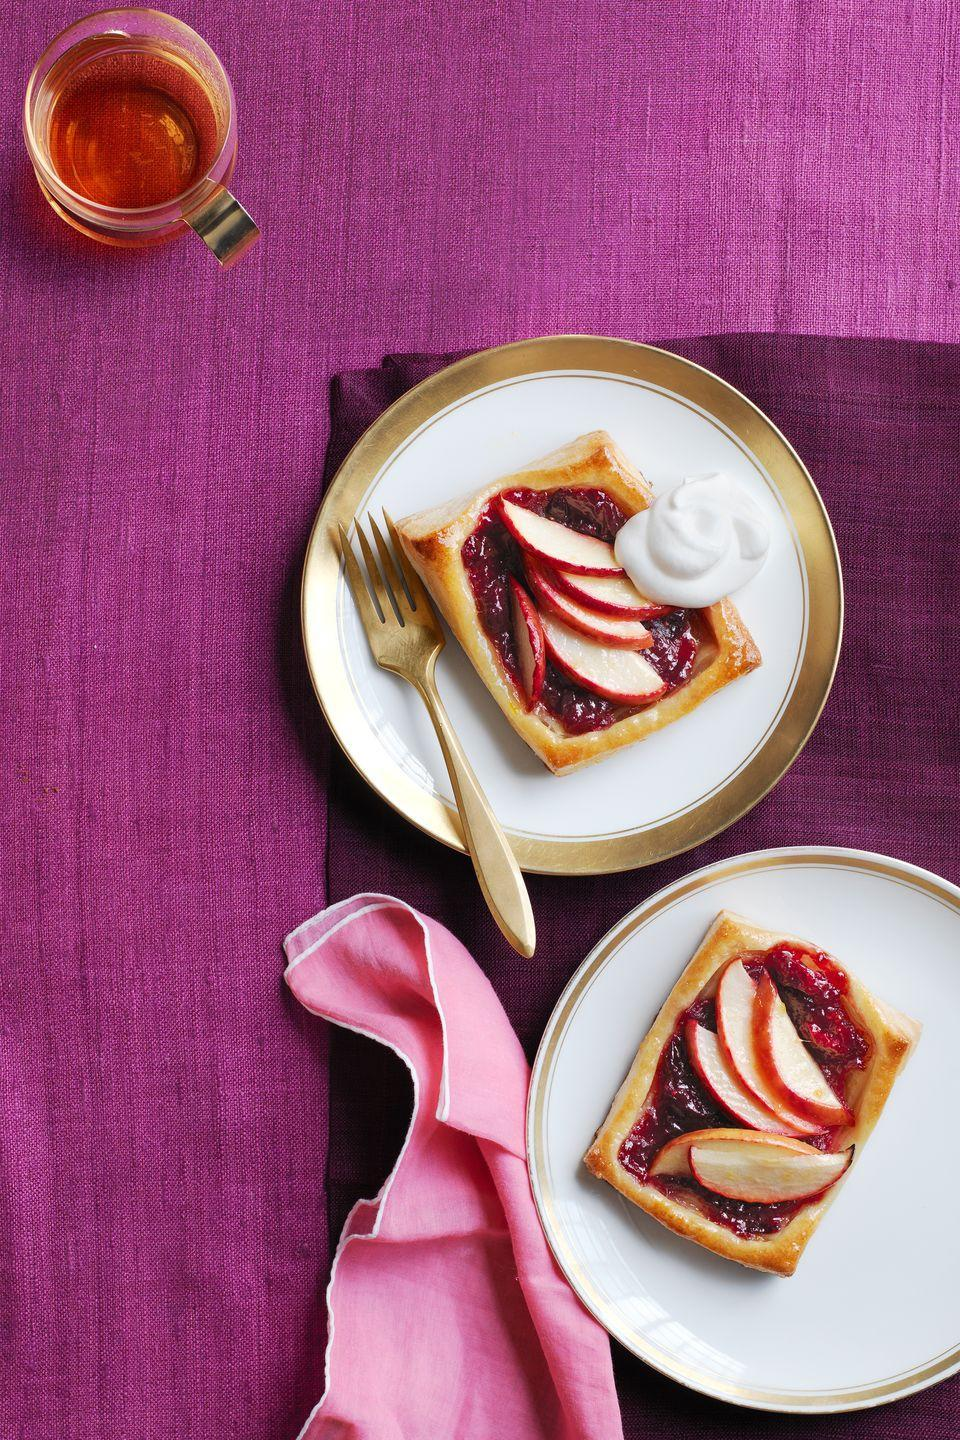 "<p>All of the best fall fruit gets wrapped up in one easy-to-eat tart for this Thanksgiving dessert.</p><p><strong><em><a href=""https://www.womansday.com/food-recipes/food-drinks/recipes/a52043/cranberry-apple-tarts/"" rel=""nofollow noopener"" target=""_blank"" data-ylk=""slk:Get the Cranberry Apple Tarts recipe."" class=""link rapid-noclick-resp"">Get the Cranberry Apple Tarts recipe. </a></em></strong></p>"